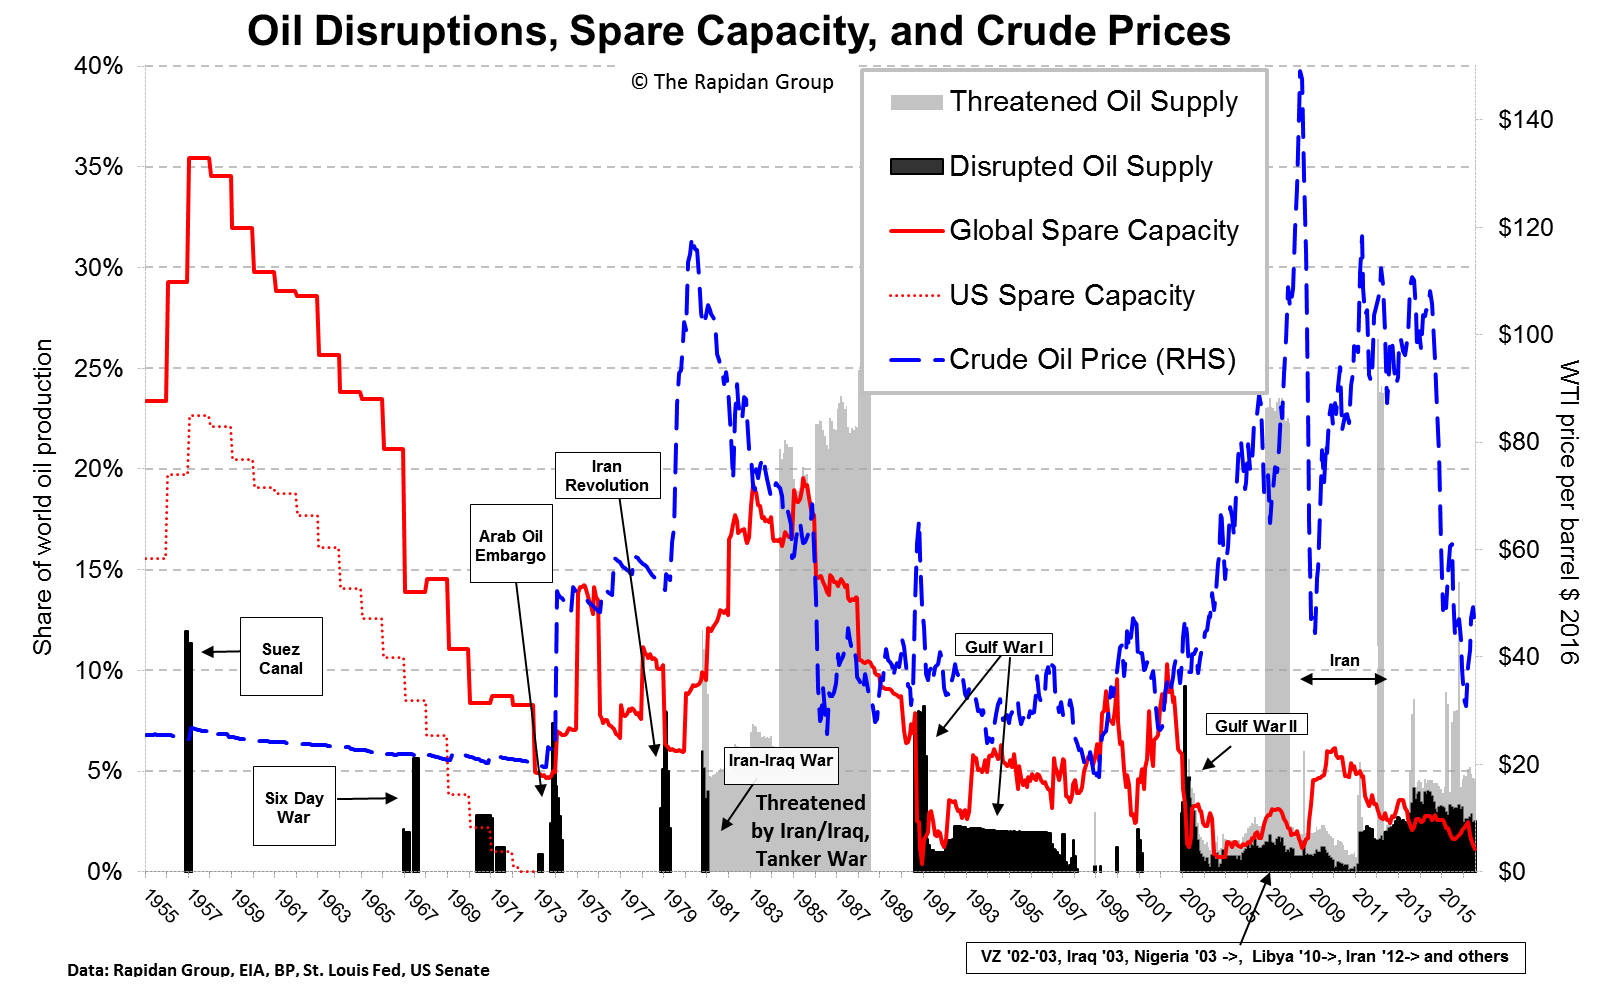 Oil Disruptions, Spare Capacity, and Crude Prices